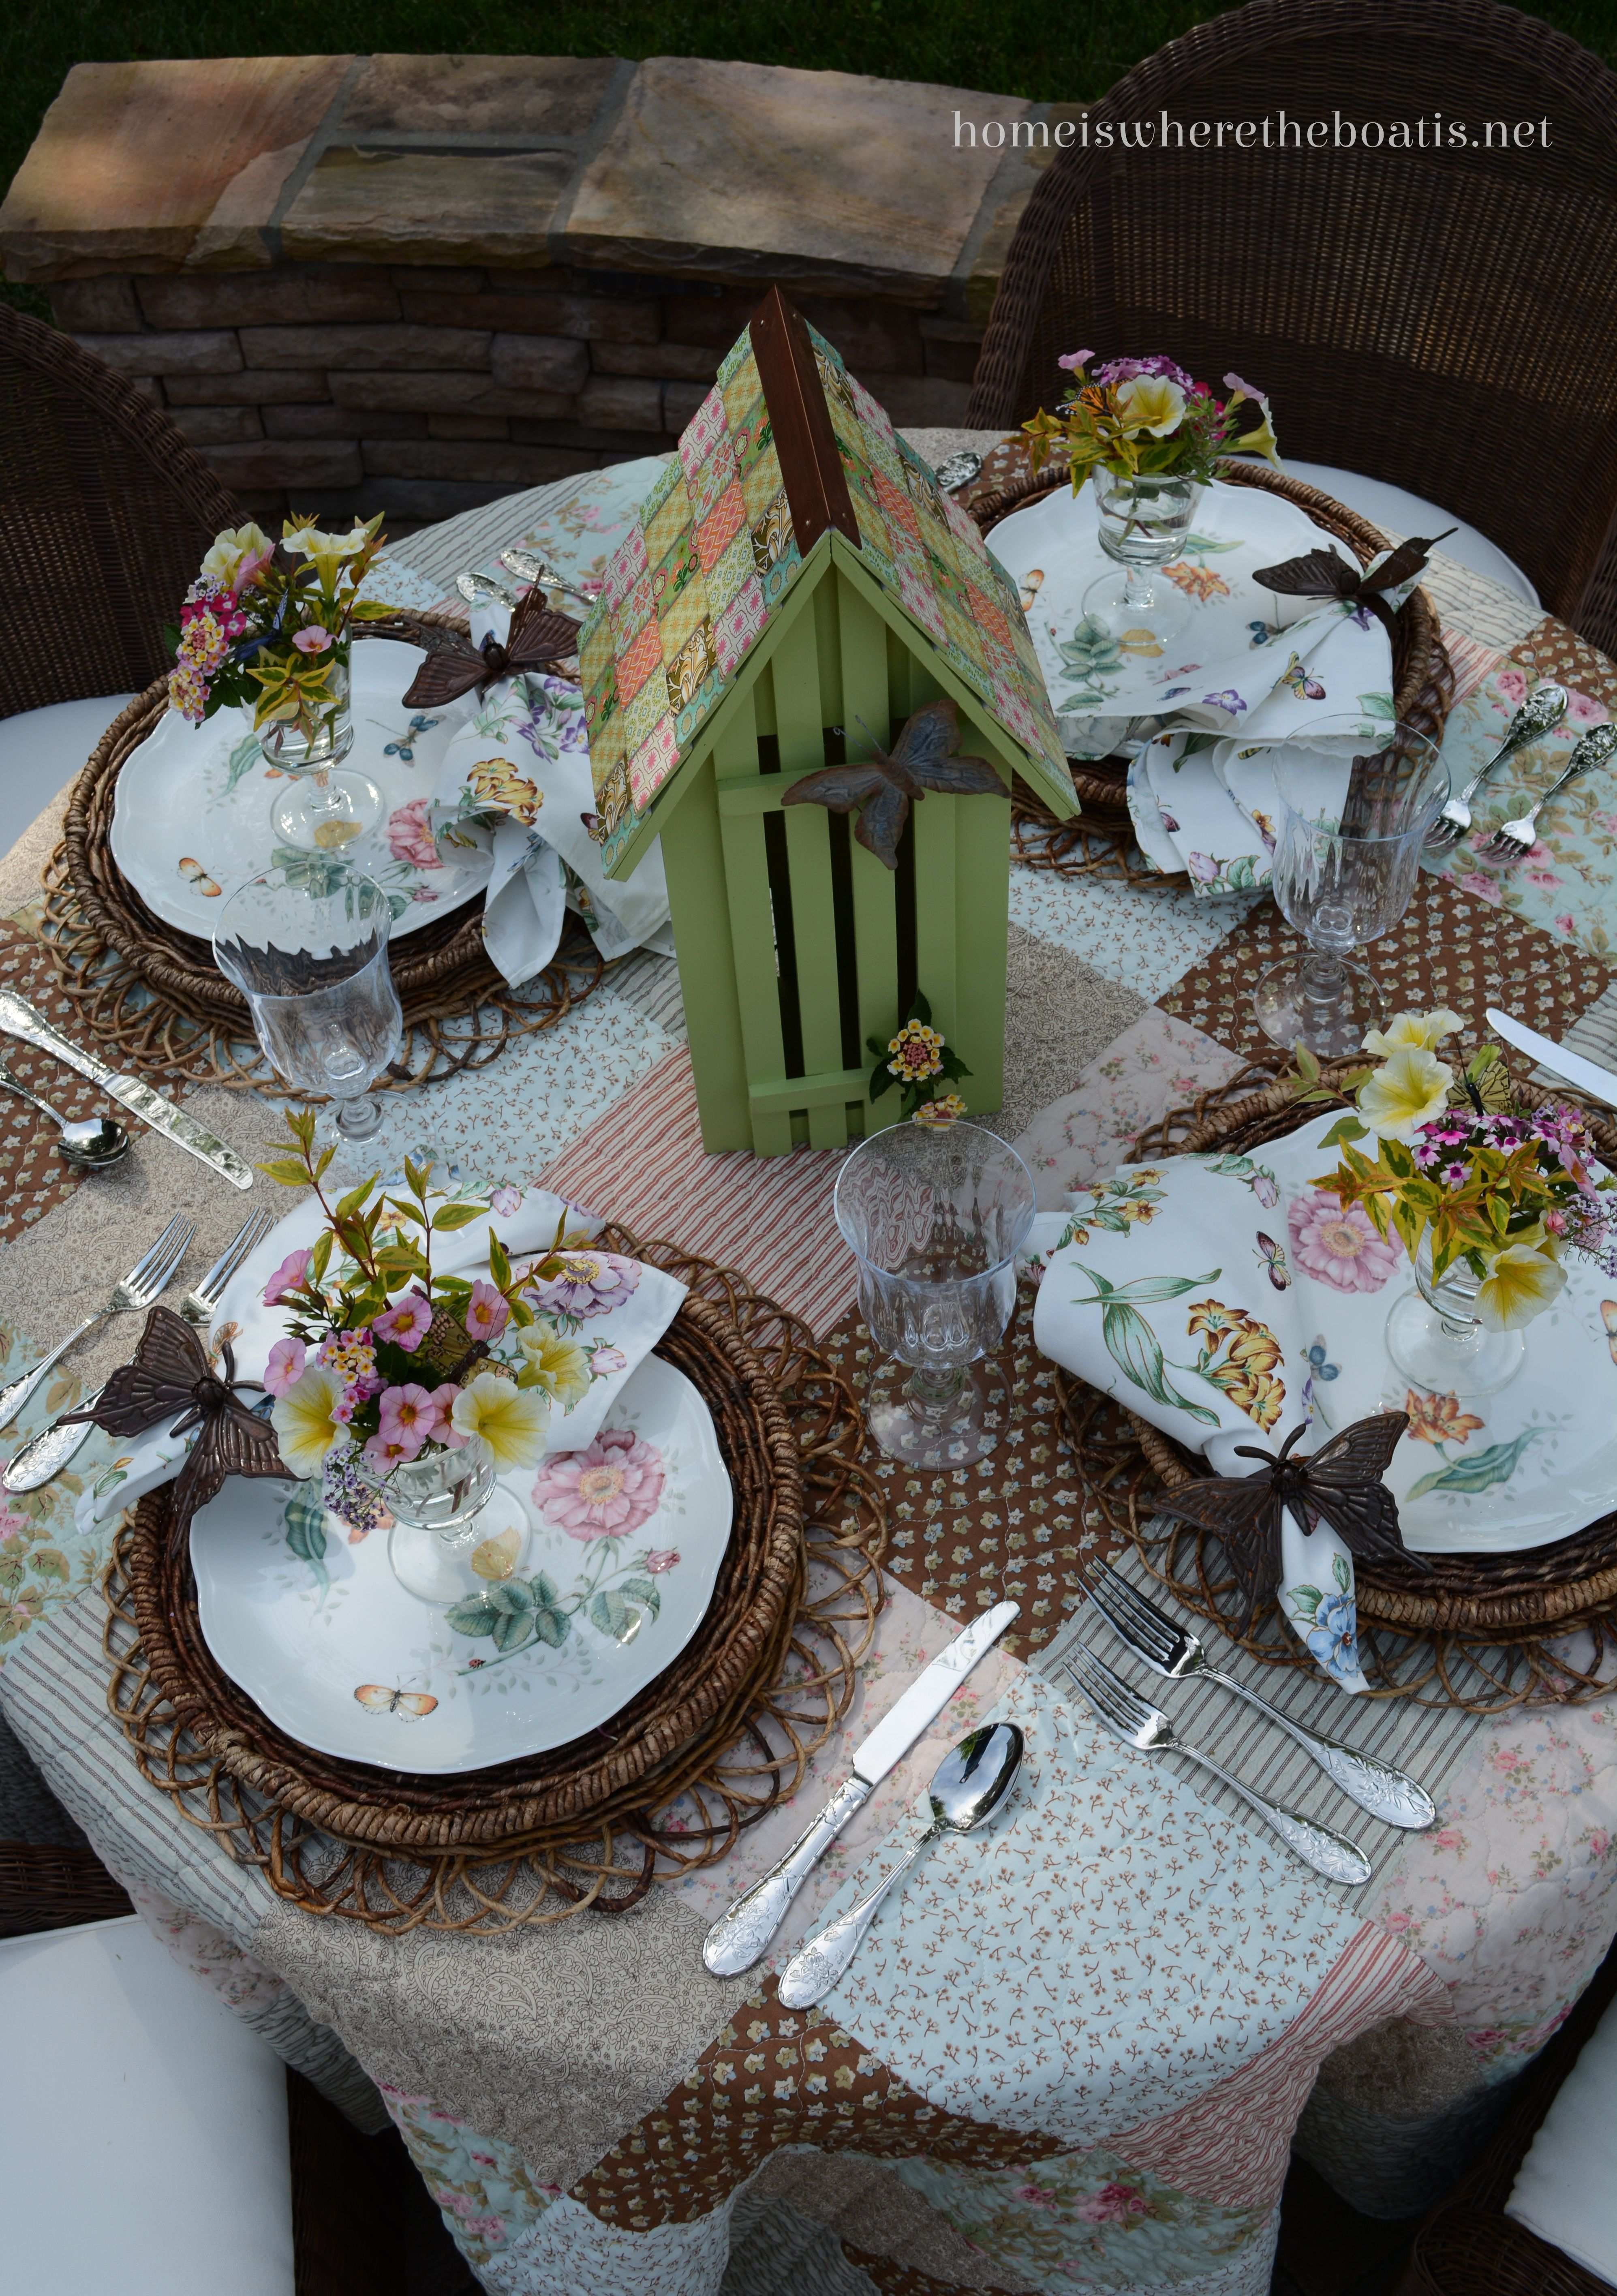 An Invitation To The Garden And Dining With Butterflies Spring Table Settings Patio Dining Table Tablescapes